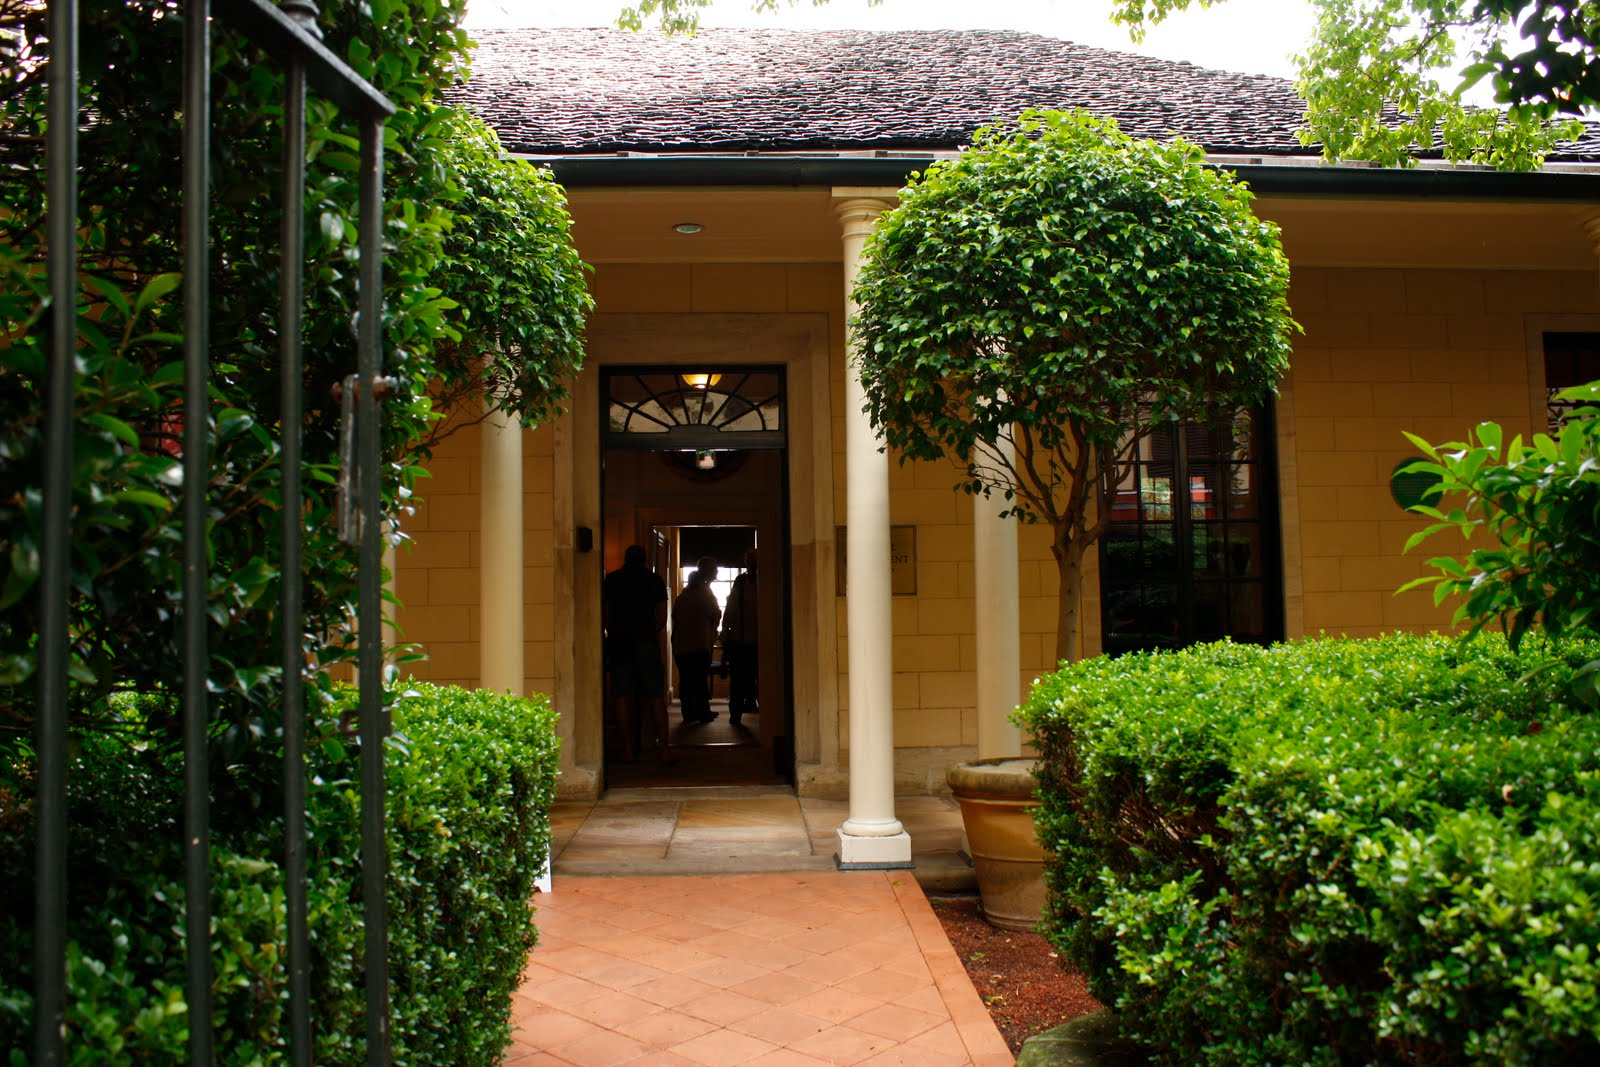 nobby design monets home and gardens. Built in the 1820s  this is Sydney s second oldest remaining house after Cadman Cottage down at Circular Quay It was built for William Harper Eye Open The Judge House